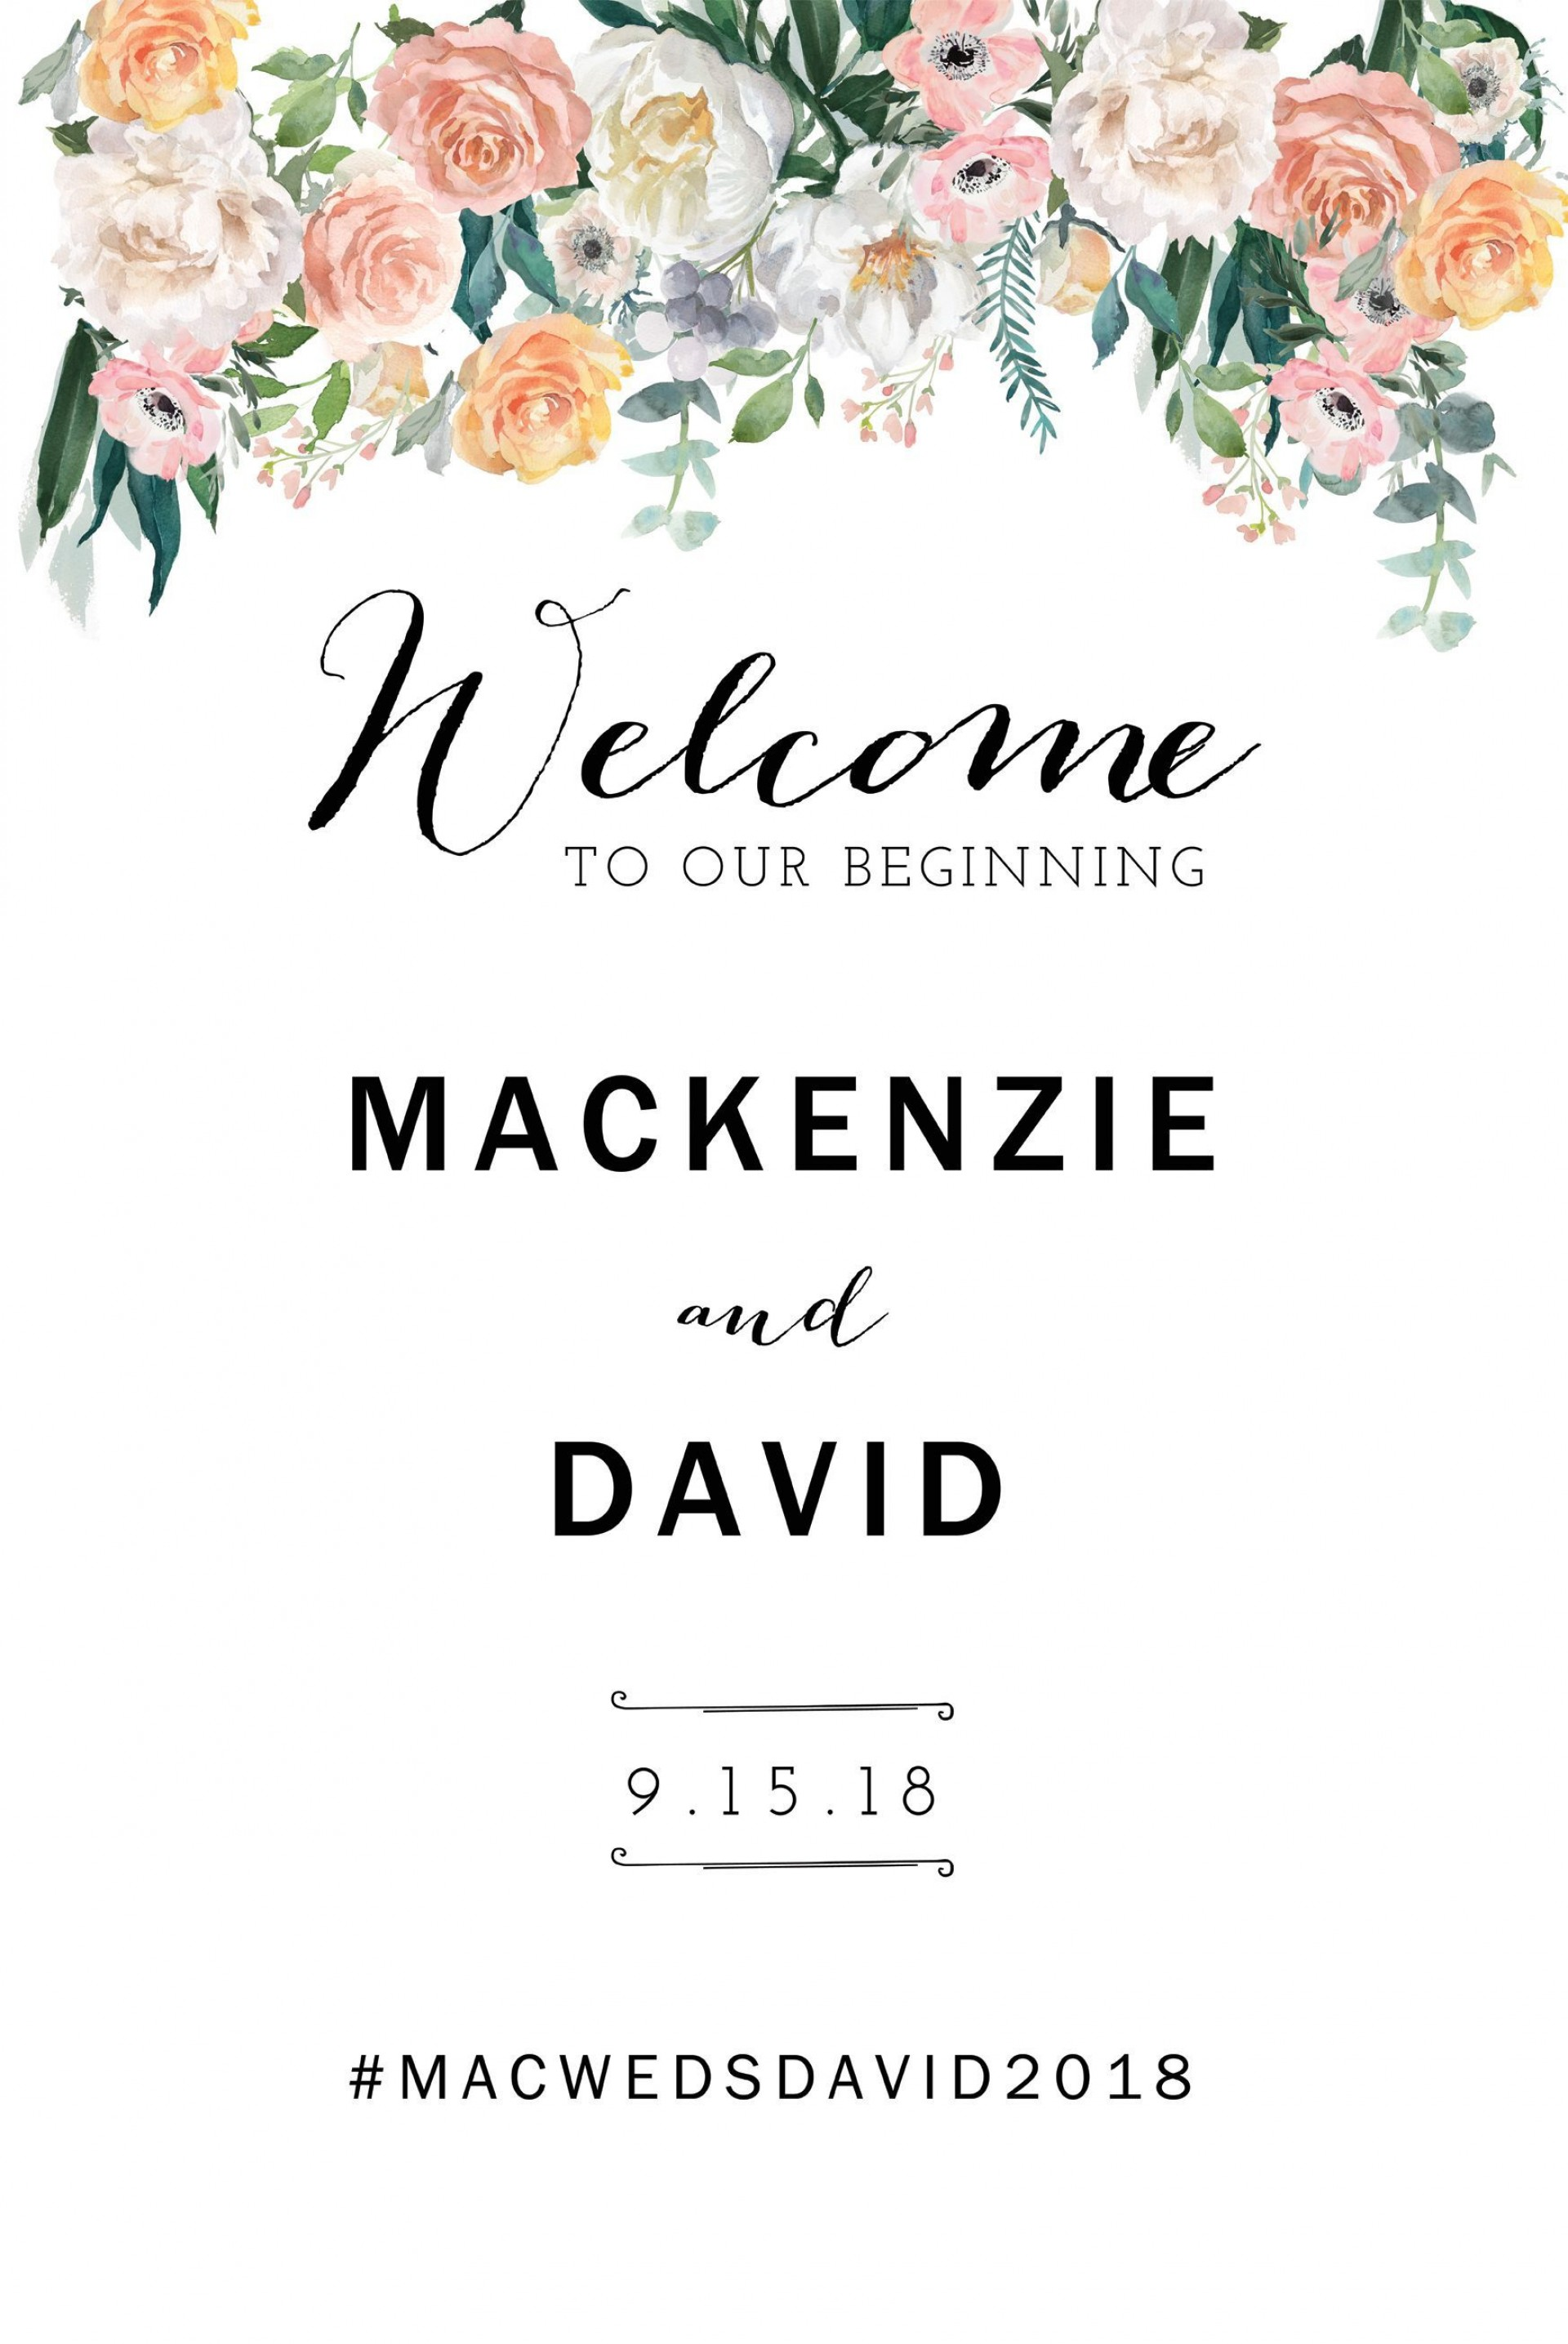 001 Unusual Wedding Welcome Sign Printable Template Design  Free1920